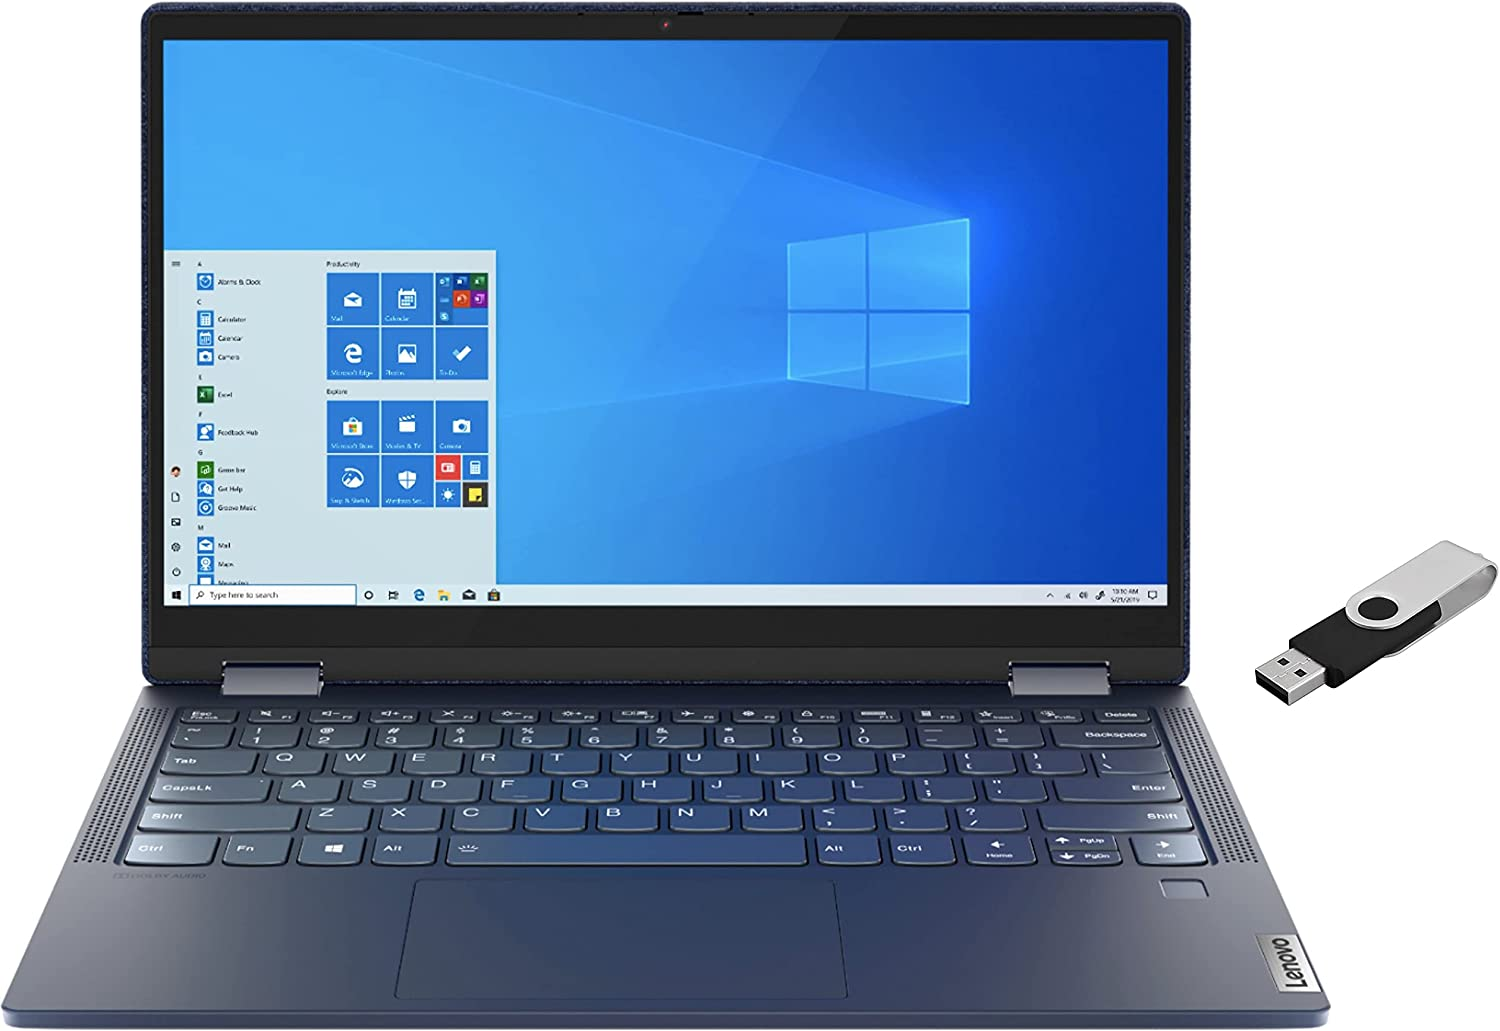 2021 LENOVO New mail order Yoga 6 2-in-1 Laptop R FHD AMD 13.3 inch Arlington Mall Touchscreen